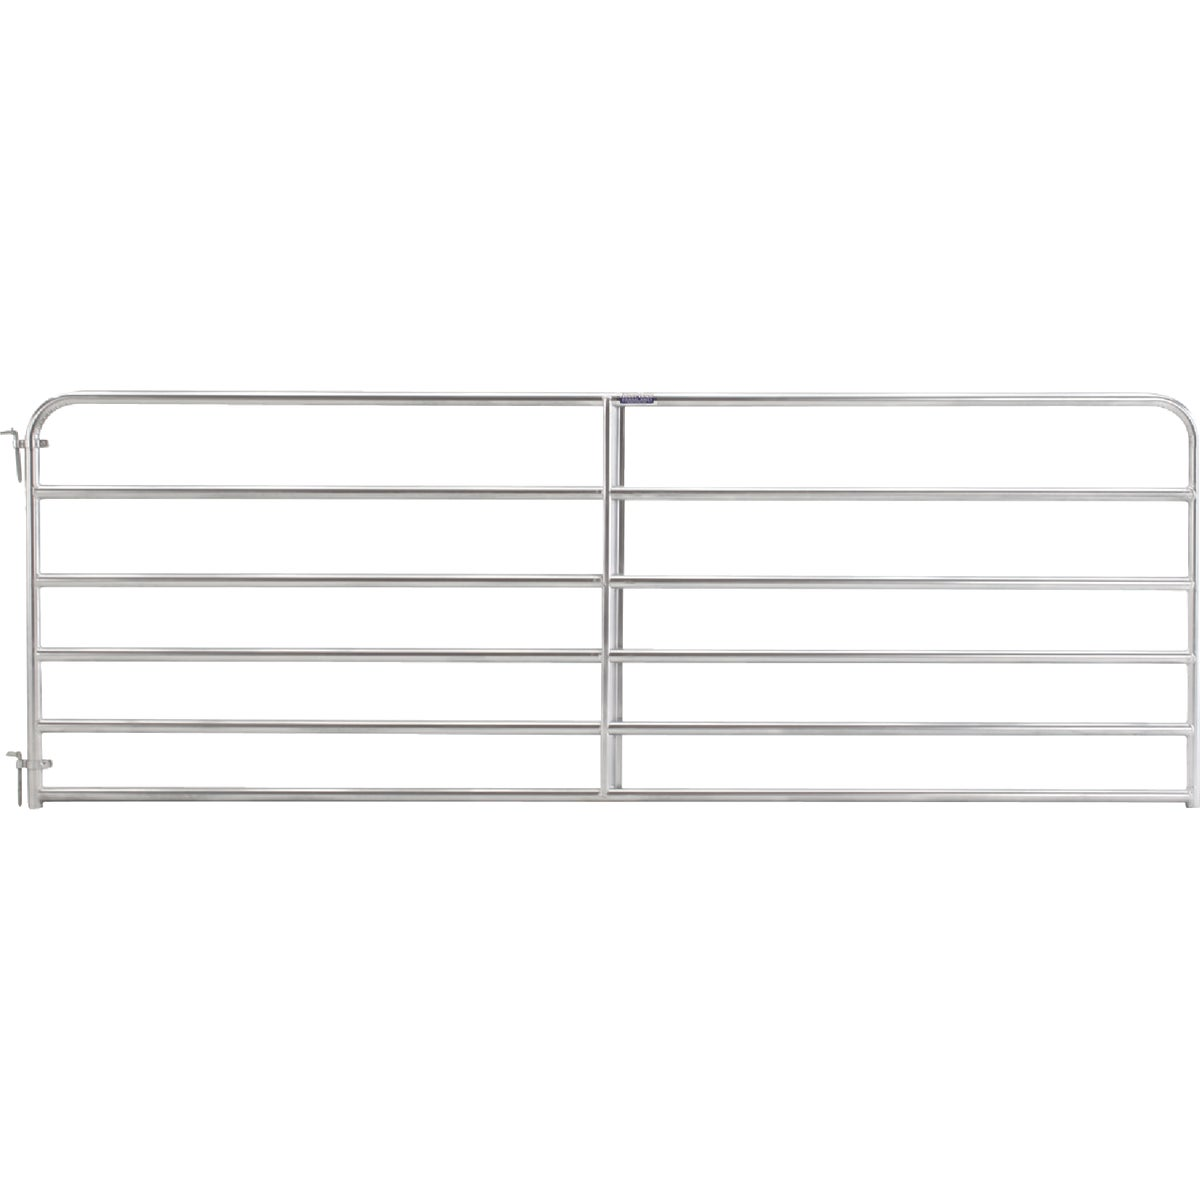 14' 19GA GLV TUBE GATE